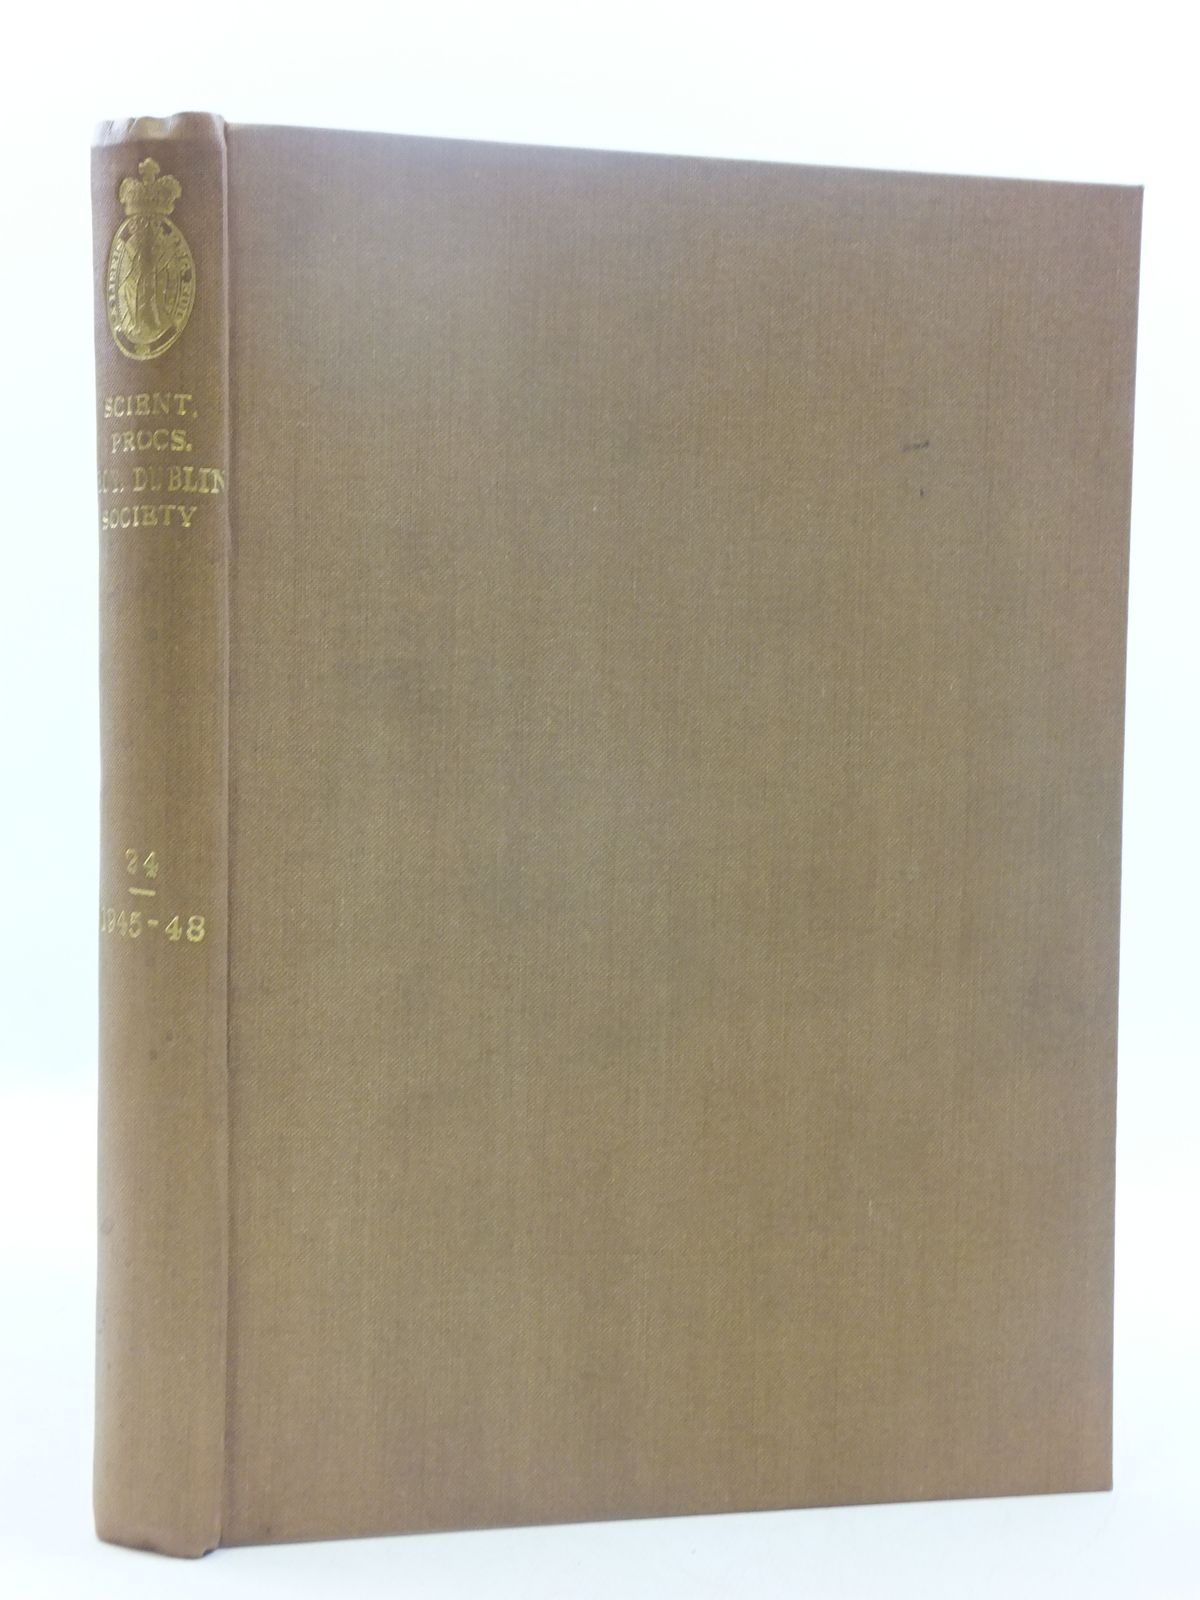 Photo of THE SCIENTIFIC PROCEEDINGS OF THE ROYAL DUBLIN SOCIETY VOLUME 24 (1945-48) published by Royal Dublin Society (STOCK CODE: 1605208)  for sale by Stella & Rose's Books